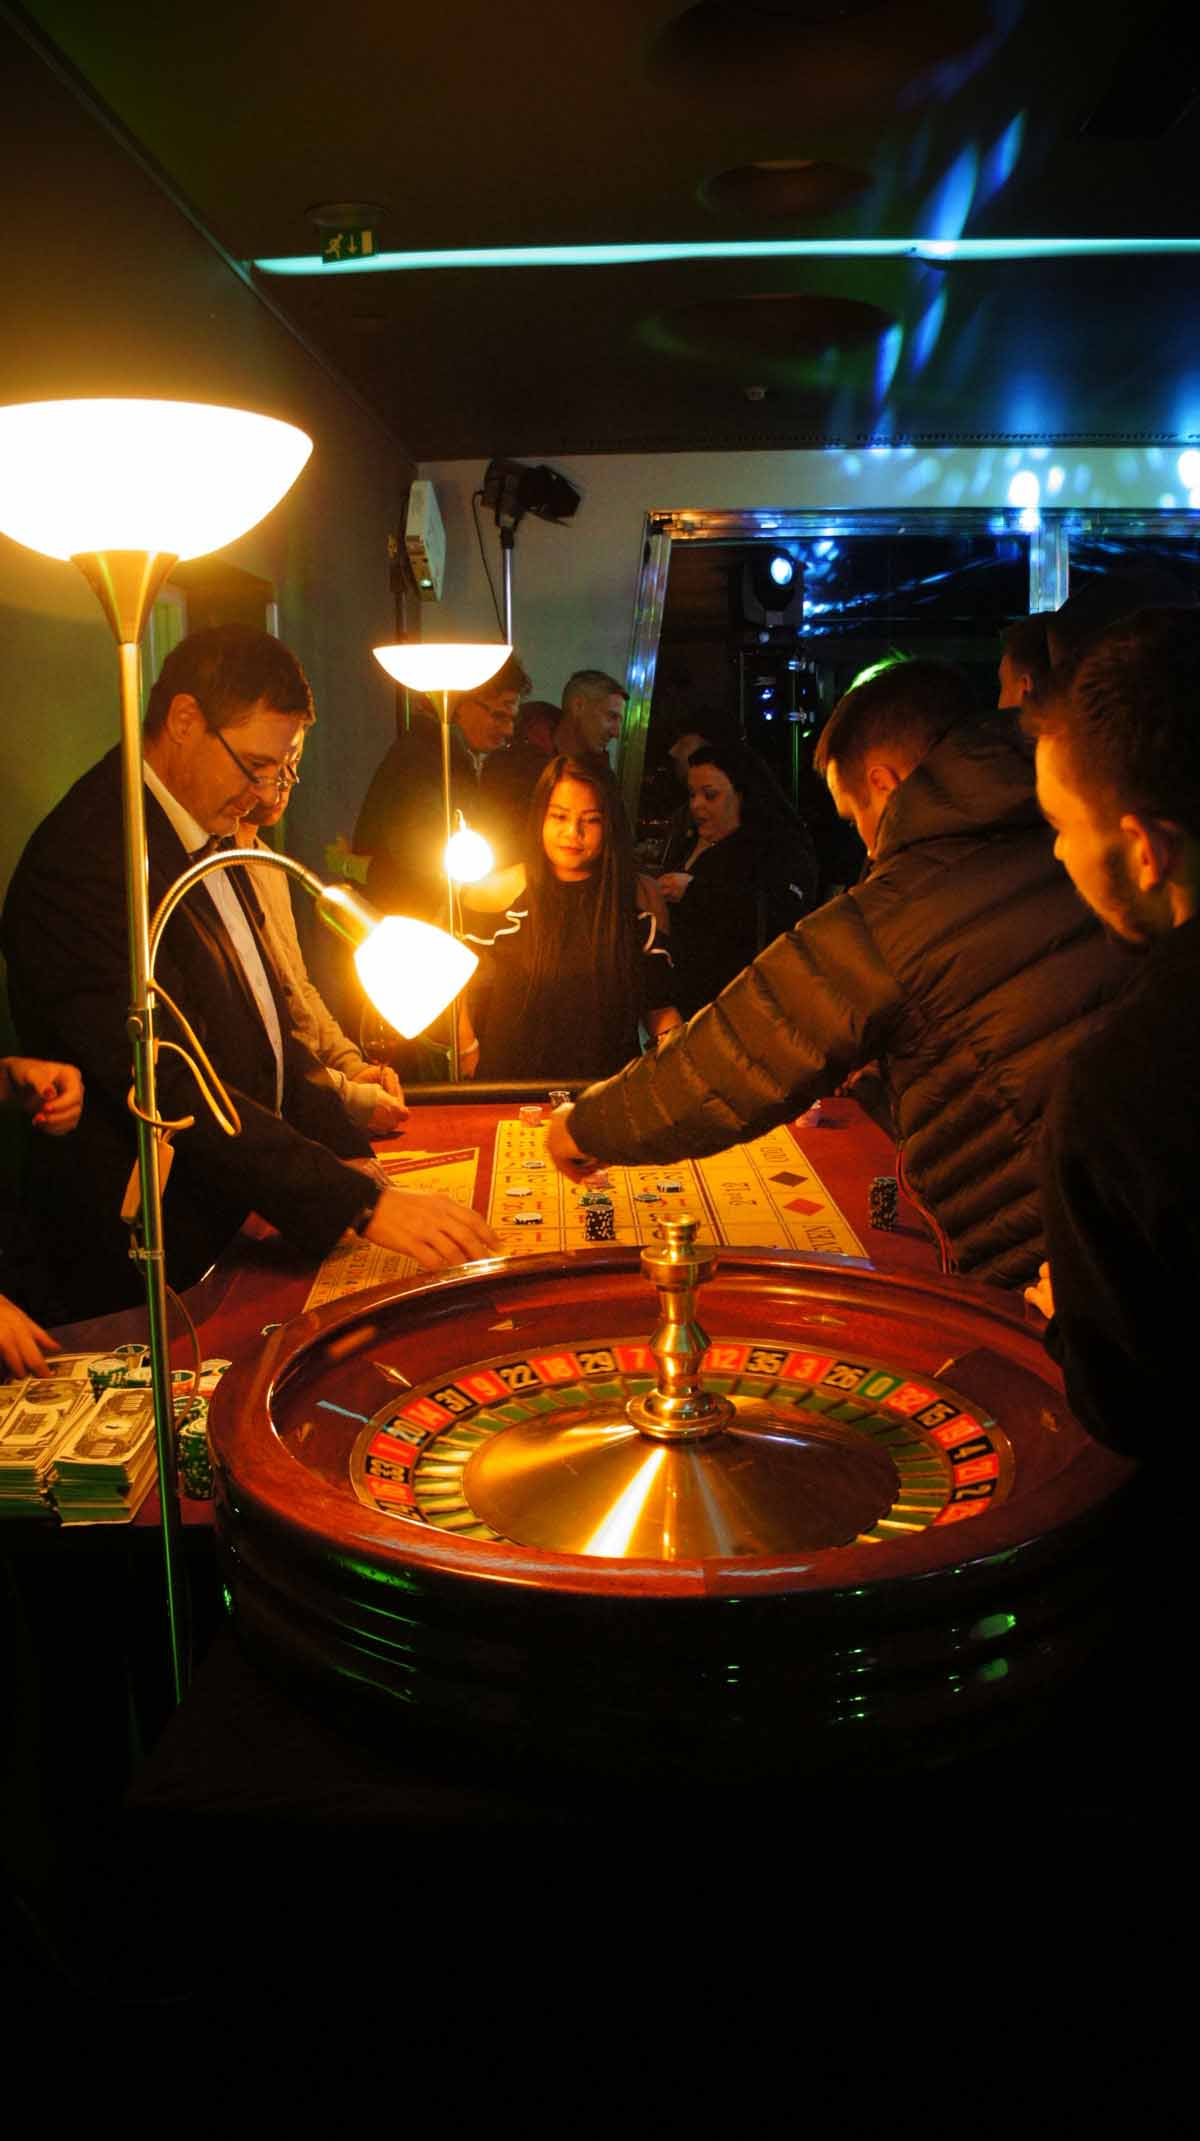 Portable casino entertains guests of the event professionally organized in Prague